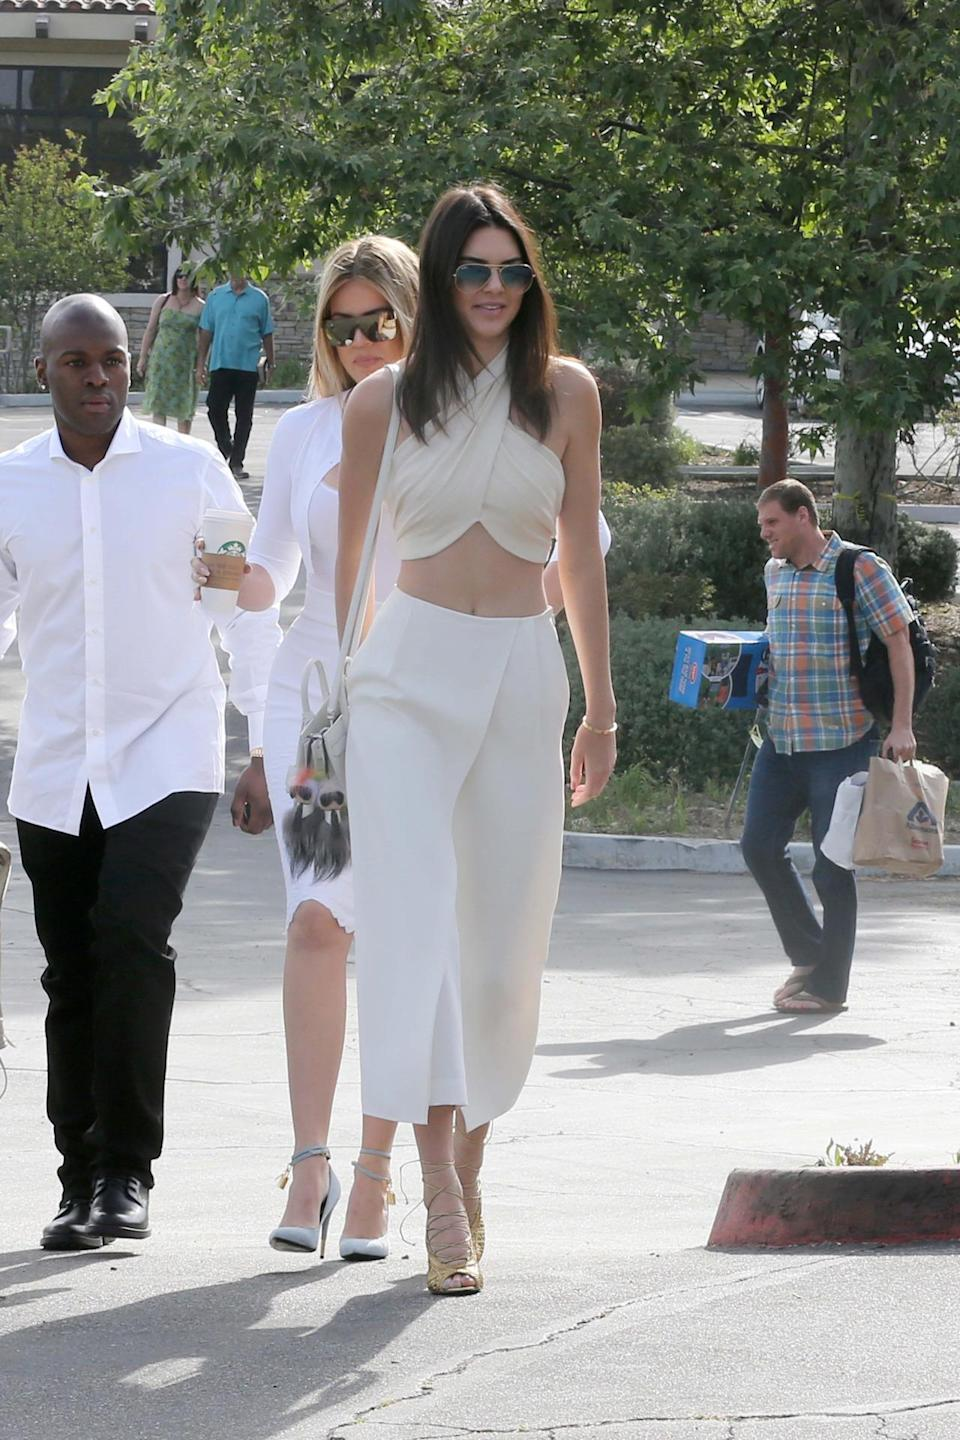 <p>Jenner took church service style to a whole new level when she attended Easter mass in a cream-colored halter-top and high-waist skants (skirt-pants, that is) with her family. </p>